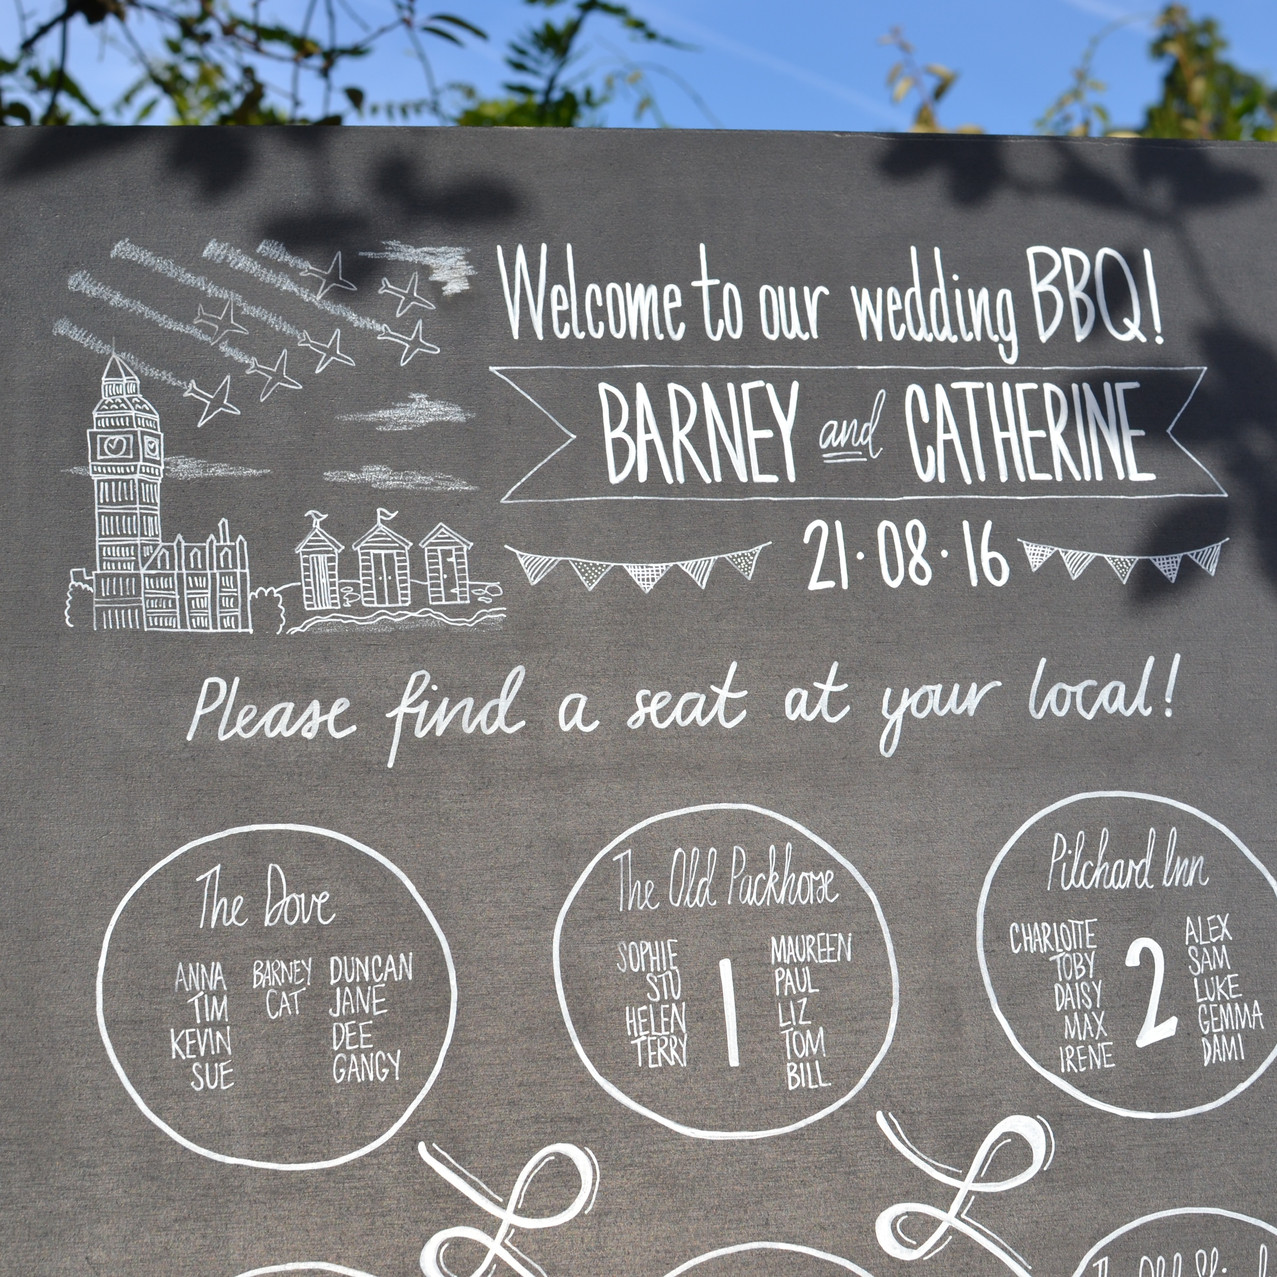 Barney & Catherine Table Plan - August 2016 (30)